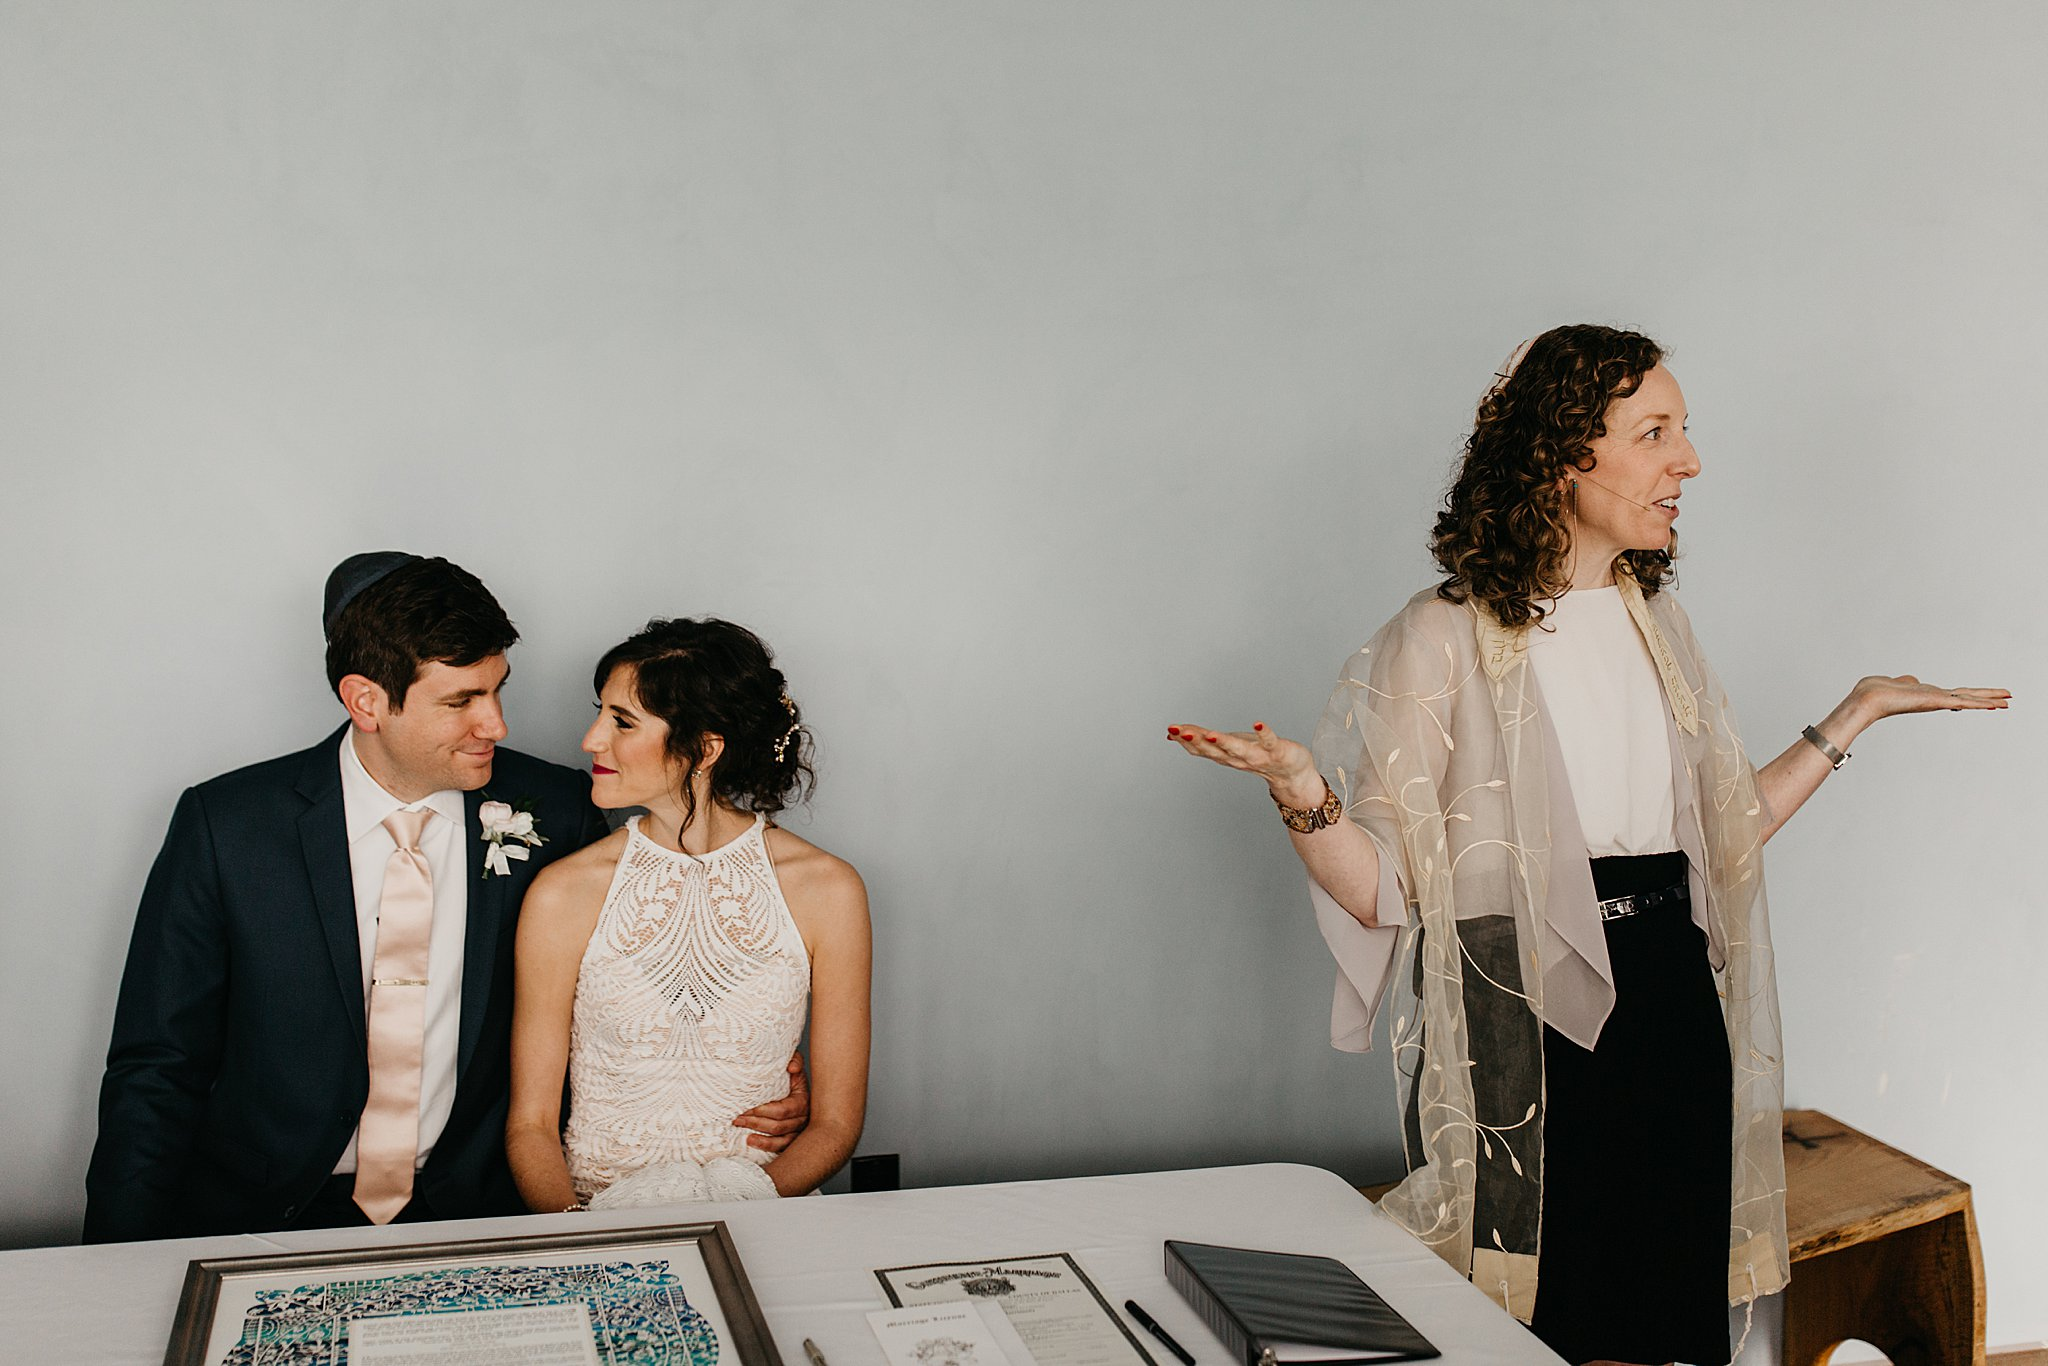 Wilderlove Co_Wedding Photographer_Industrial Wedding_Jewish Wedding_Dallas Texas Wedding_Brake & Clutch Warehouse_North Texas Photographer_0043.jpg